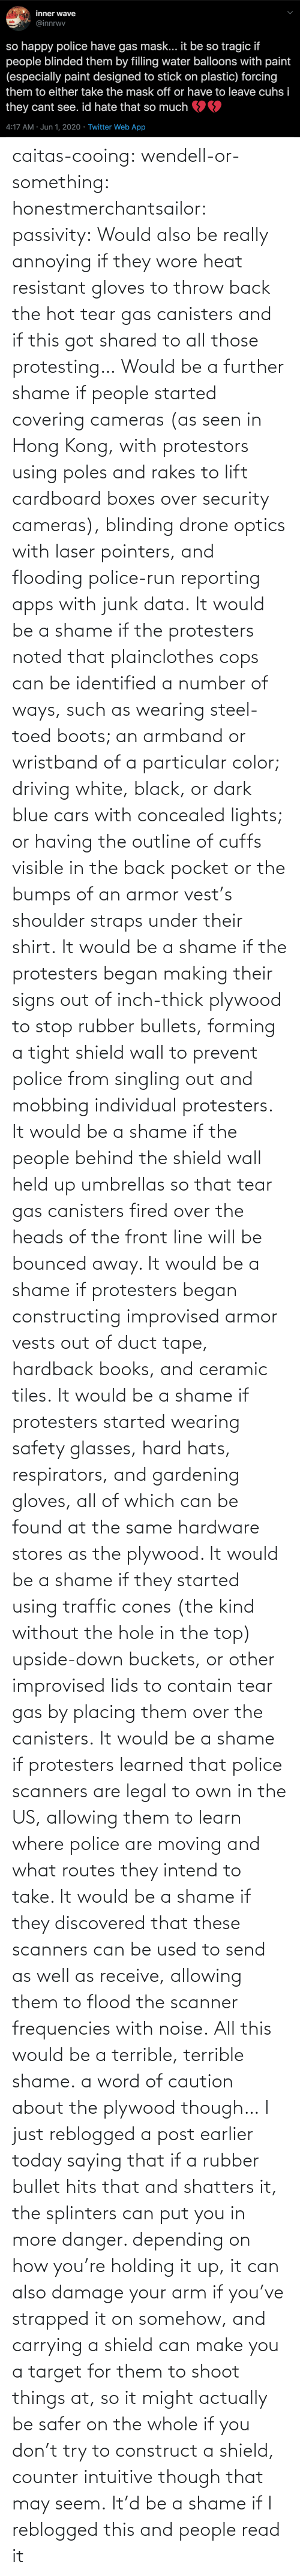 steel: caitas-cooing:  wendell-or-something: honestmerchantsailor:  passivity: Would also be really annoying if they wore heat resistant gloves to throw back the hot tear gas canisters and if this got shared to all those protesting… Would be a further shame if people started covering cameras (as seen in Hong Kong, with protestors using poles and rakes to lift cardboard boxes over security cameras), blinding drone optics with laser pointers, and flooding police-run reporting apps with junk data. It would be a shame if the protesters noted that plainclothes cops can be identified a number of ways, such as wearing steel-toed boots; an armband or wristband of a particular color; driving white, black, or dark blue cars with concealed lights; or having the outline of cuffs visible in the back pocket or the bumps of an armor vest's shoulder straps under their shirt. It would be a shame if the protesters began making their signs out of inch-thick plywood to stop rubber bullets, forming a tight shield wall to prevent police from singling out and mobbing individual protesters. It would be a shame if the people behind the shield wall held up umbrellas so that tear gas canisters fired over the heads of the front line will be bounced away. It would be a shame if protesters began constructing improvised armor vests out of duct tape, hardback books, and ceramic tiles. It would be a shame if protesters started wearing safety glasses, hard hats, respirators, and gardening gloves, all of which can be found at the same hardware stores as the plywood. It would be a shame if they started using traffic cones (the kind without the hole in the top) upside-down buckets, or other improvised lids to contain tear gas by placing them over the canisters. It would be a shame if protesters learned that police scanners are legal to own in the US, allowing them to learn where police are moving and what routes they intend to take. It would be a shame if they discovered that these scanners can be used to send as well as receive, allowing them to flood the scanner frequencies with noise. All this would be a terrible, terrible shame.    a word of caution about the plywood though… I just reblogged a post earlier today saying that if a rubber bullet hits that and shatters it, the splinters can put you in more danger. depending on how you're holding it up, it can also damage your arm if you've strapped it on somehow, and carrying a shield can make you a target for them to shoot things at, so it might actually be safer on the whole if you don't try to construct a shield, counter intuitive though that may seem.    It'd be a shame if I reblogged this and people read it